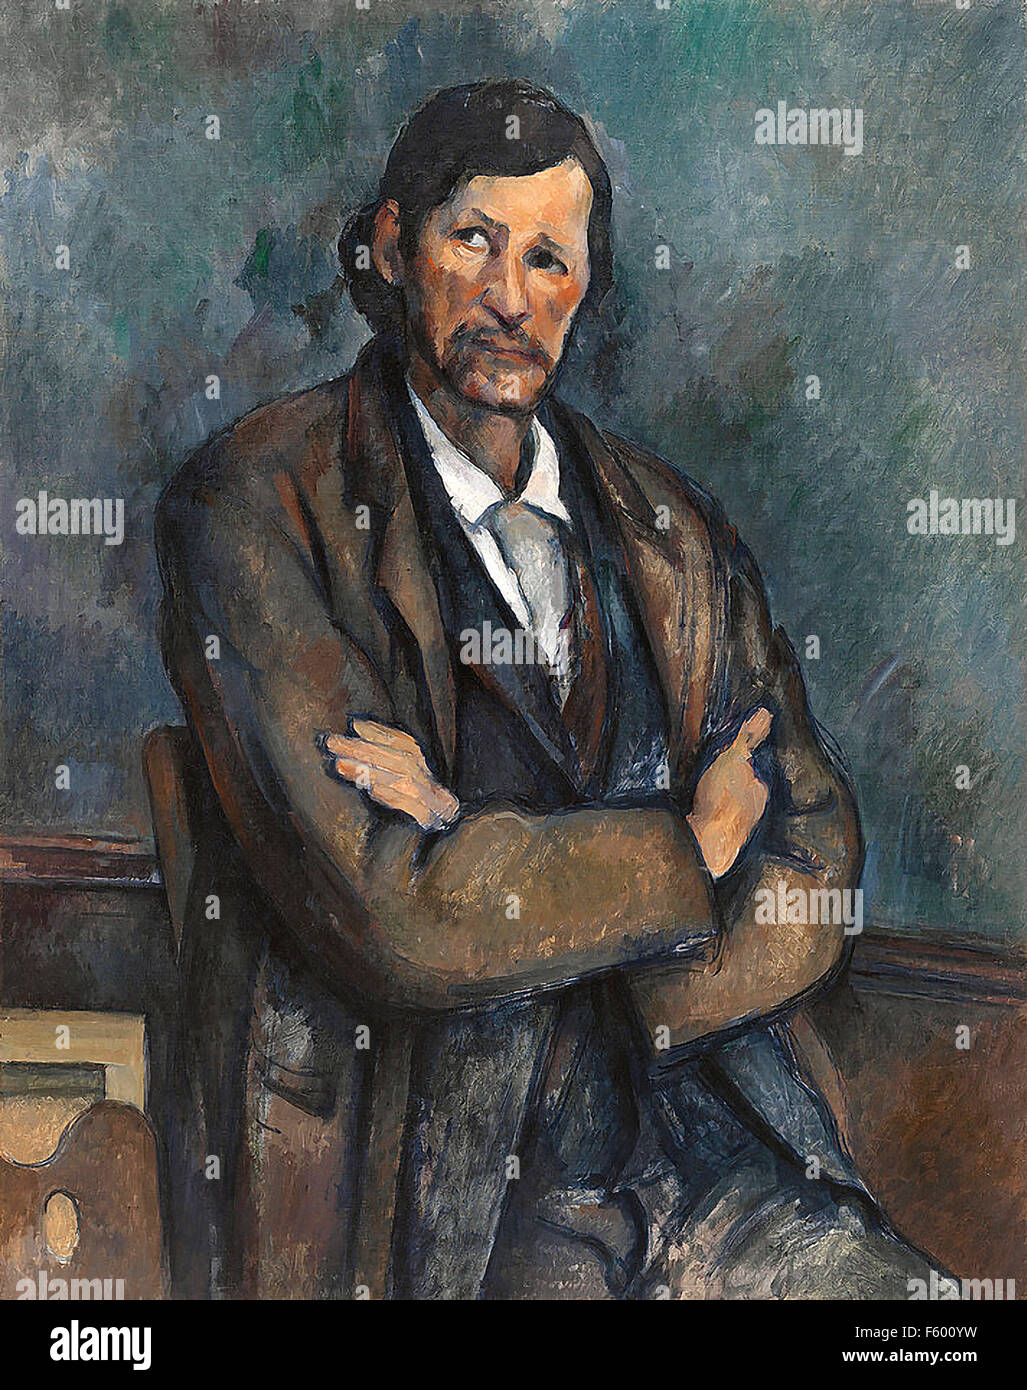 Paul Cézanne - Man with Crossed Arms - Stock Image